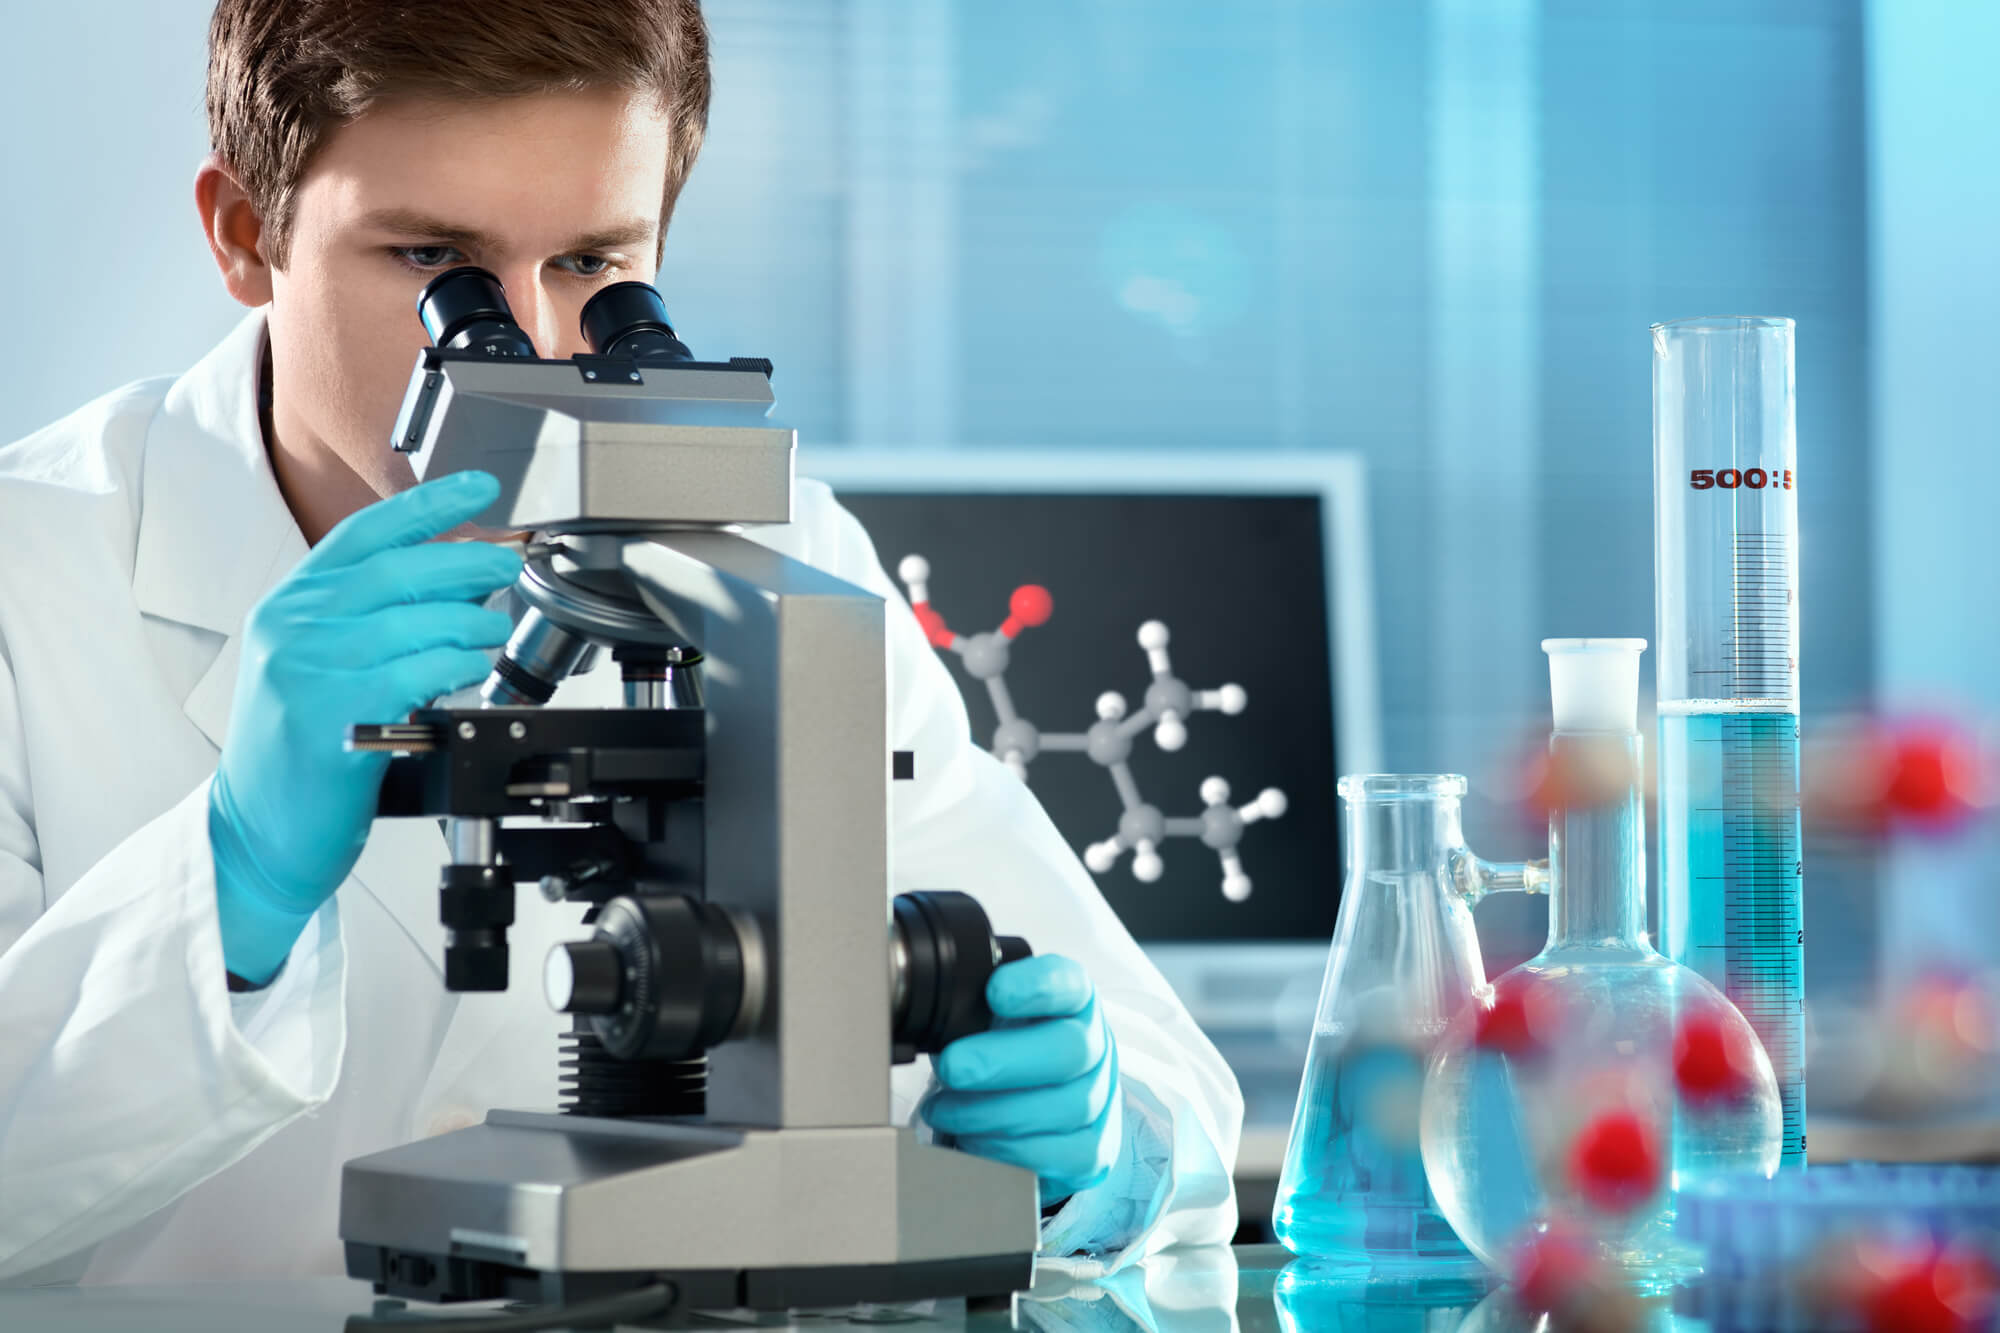 Male researcher looks into a microscope, possibly studying the link between low testosterone and comorbidity.